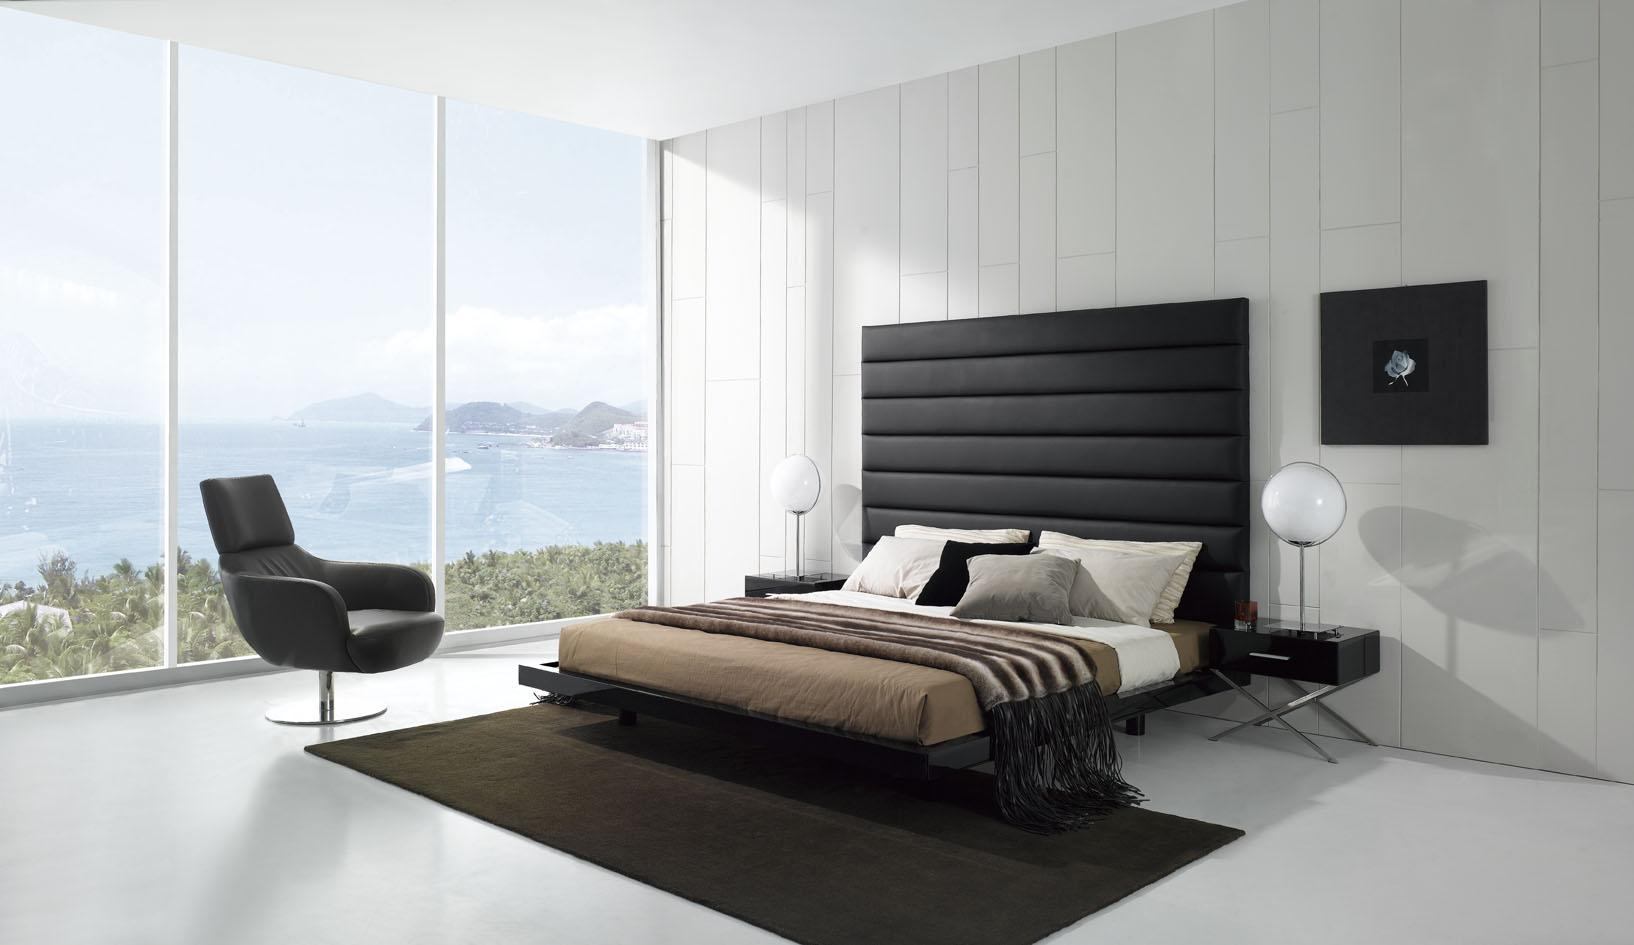 black and white bedroom with amazing view